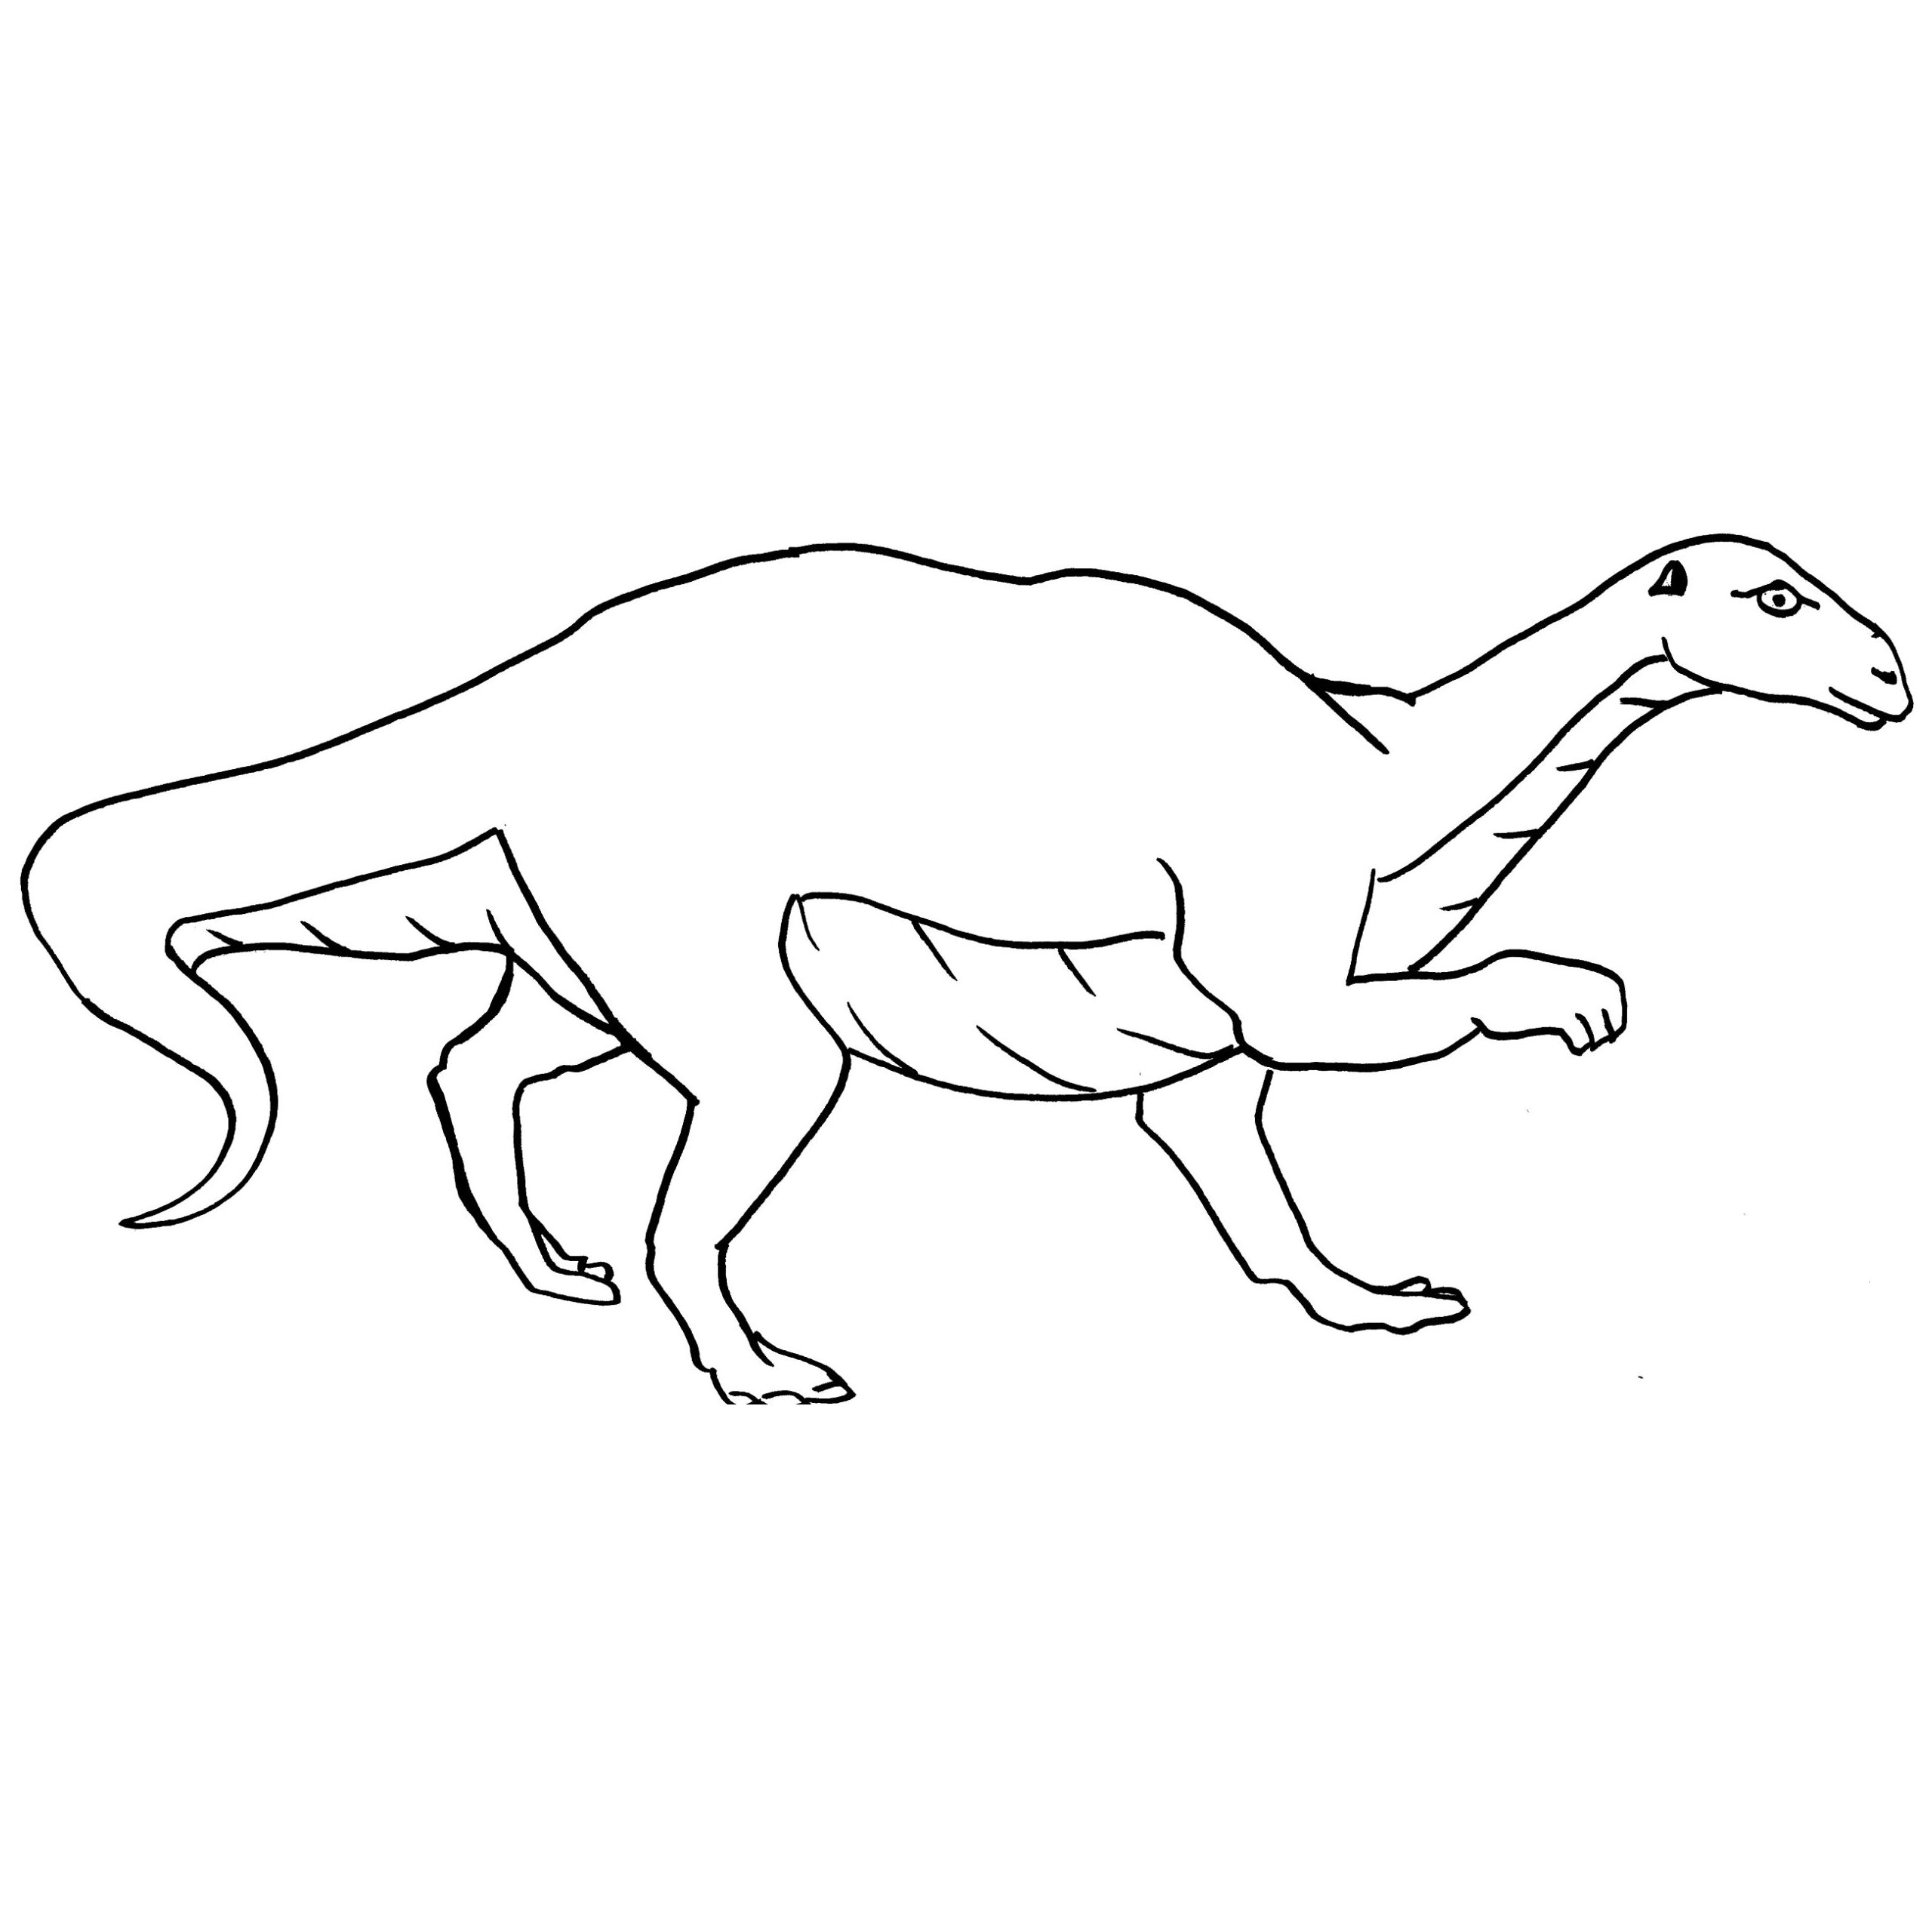 color by number coloring pages - maiasaura